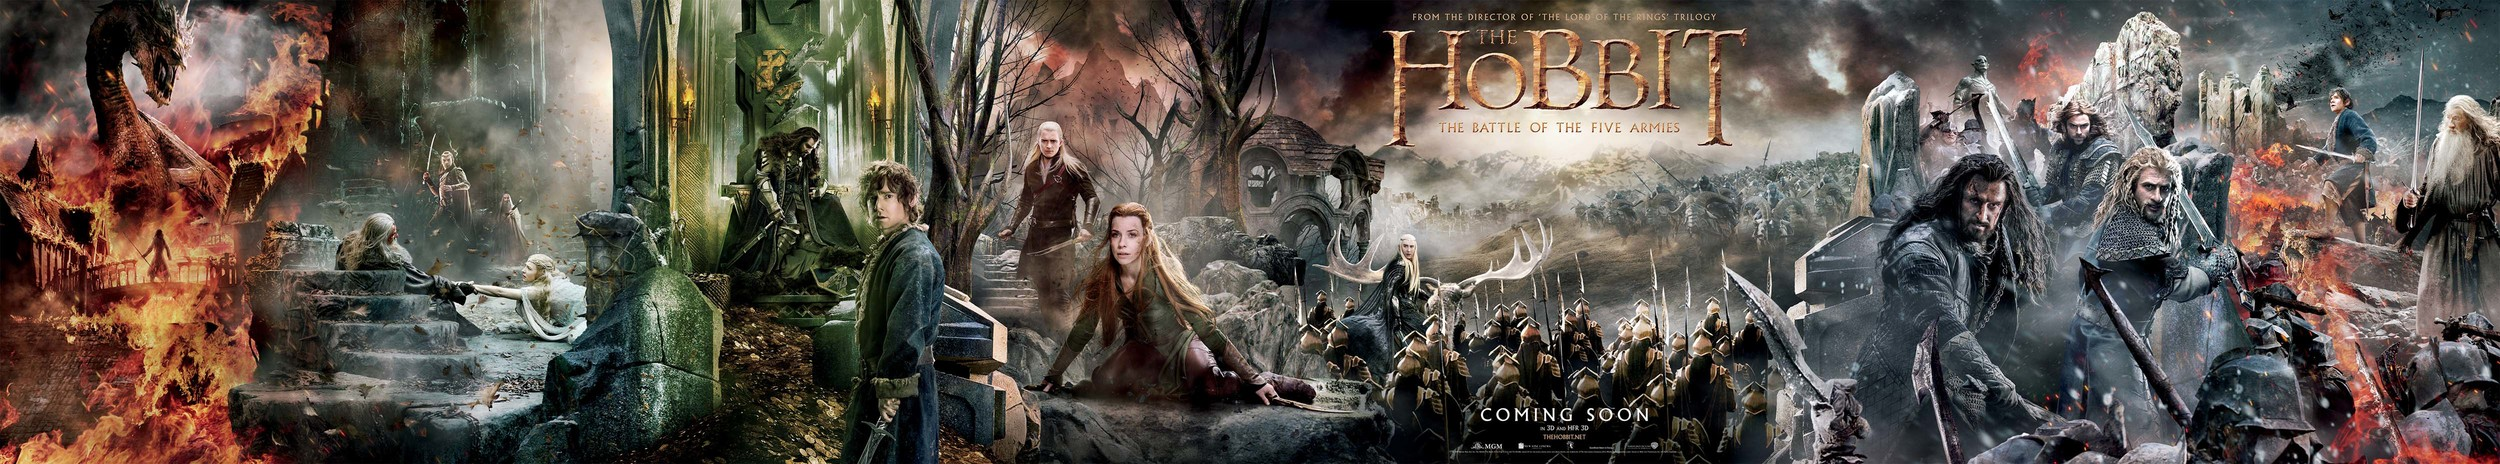 Battle-of-the-five-armies-banner.jpg